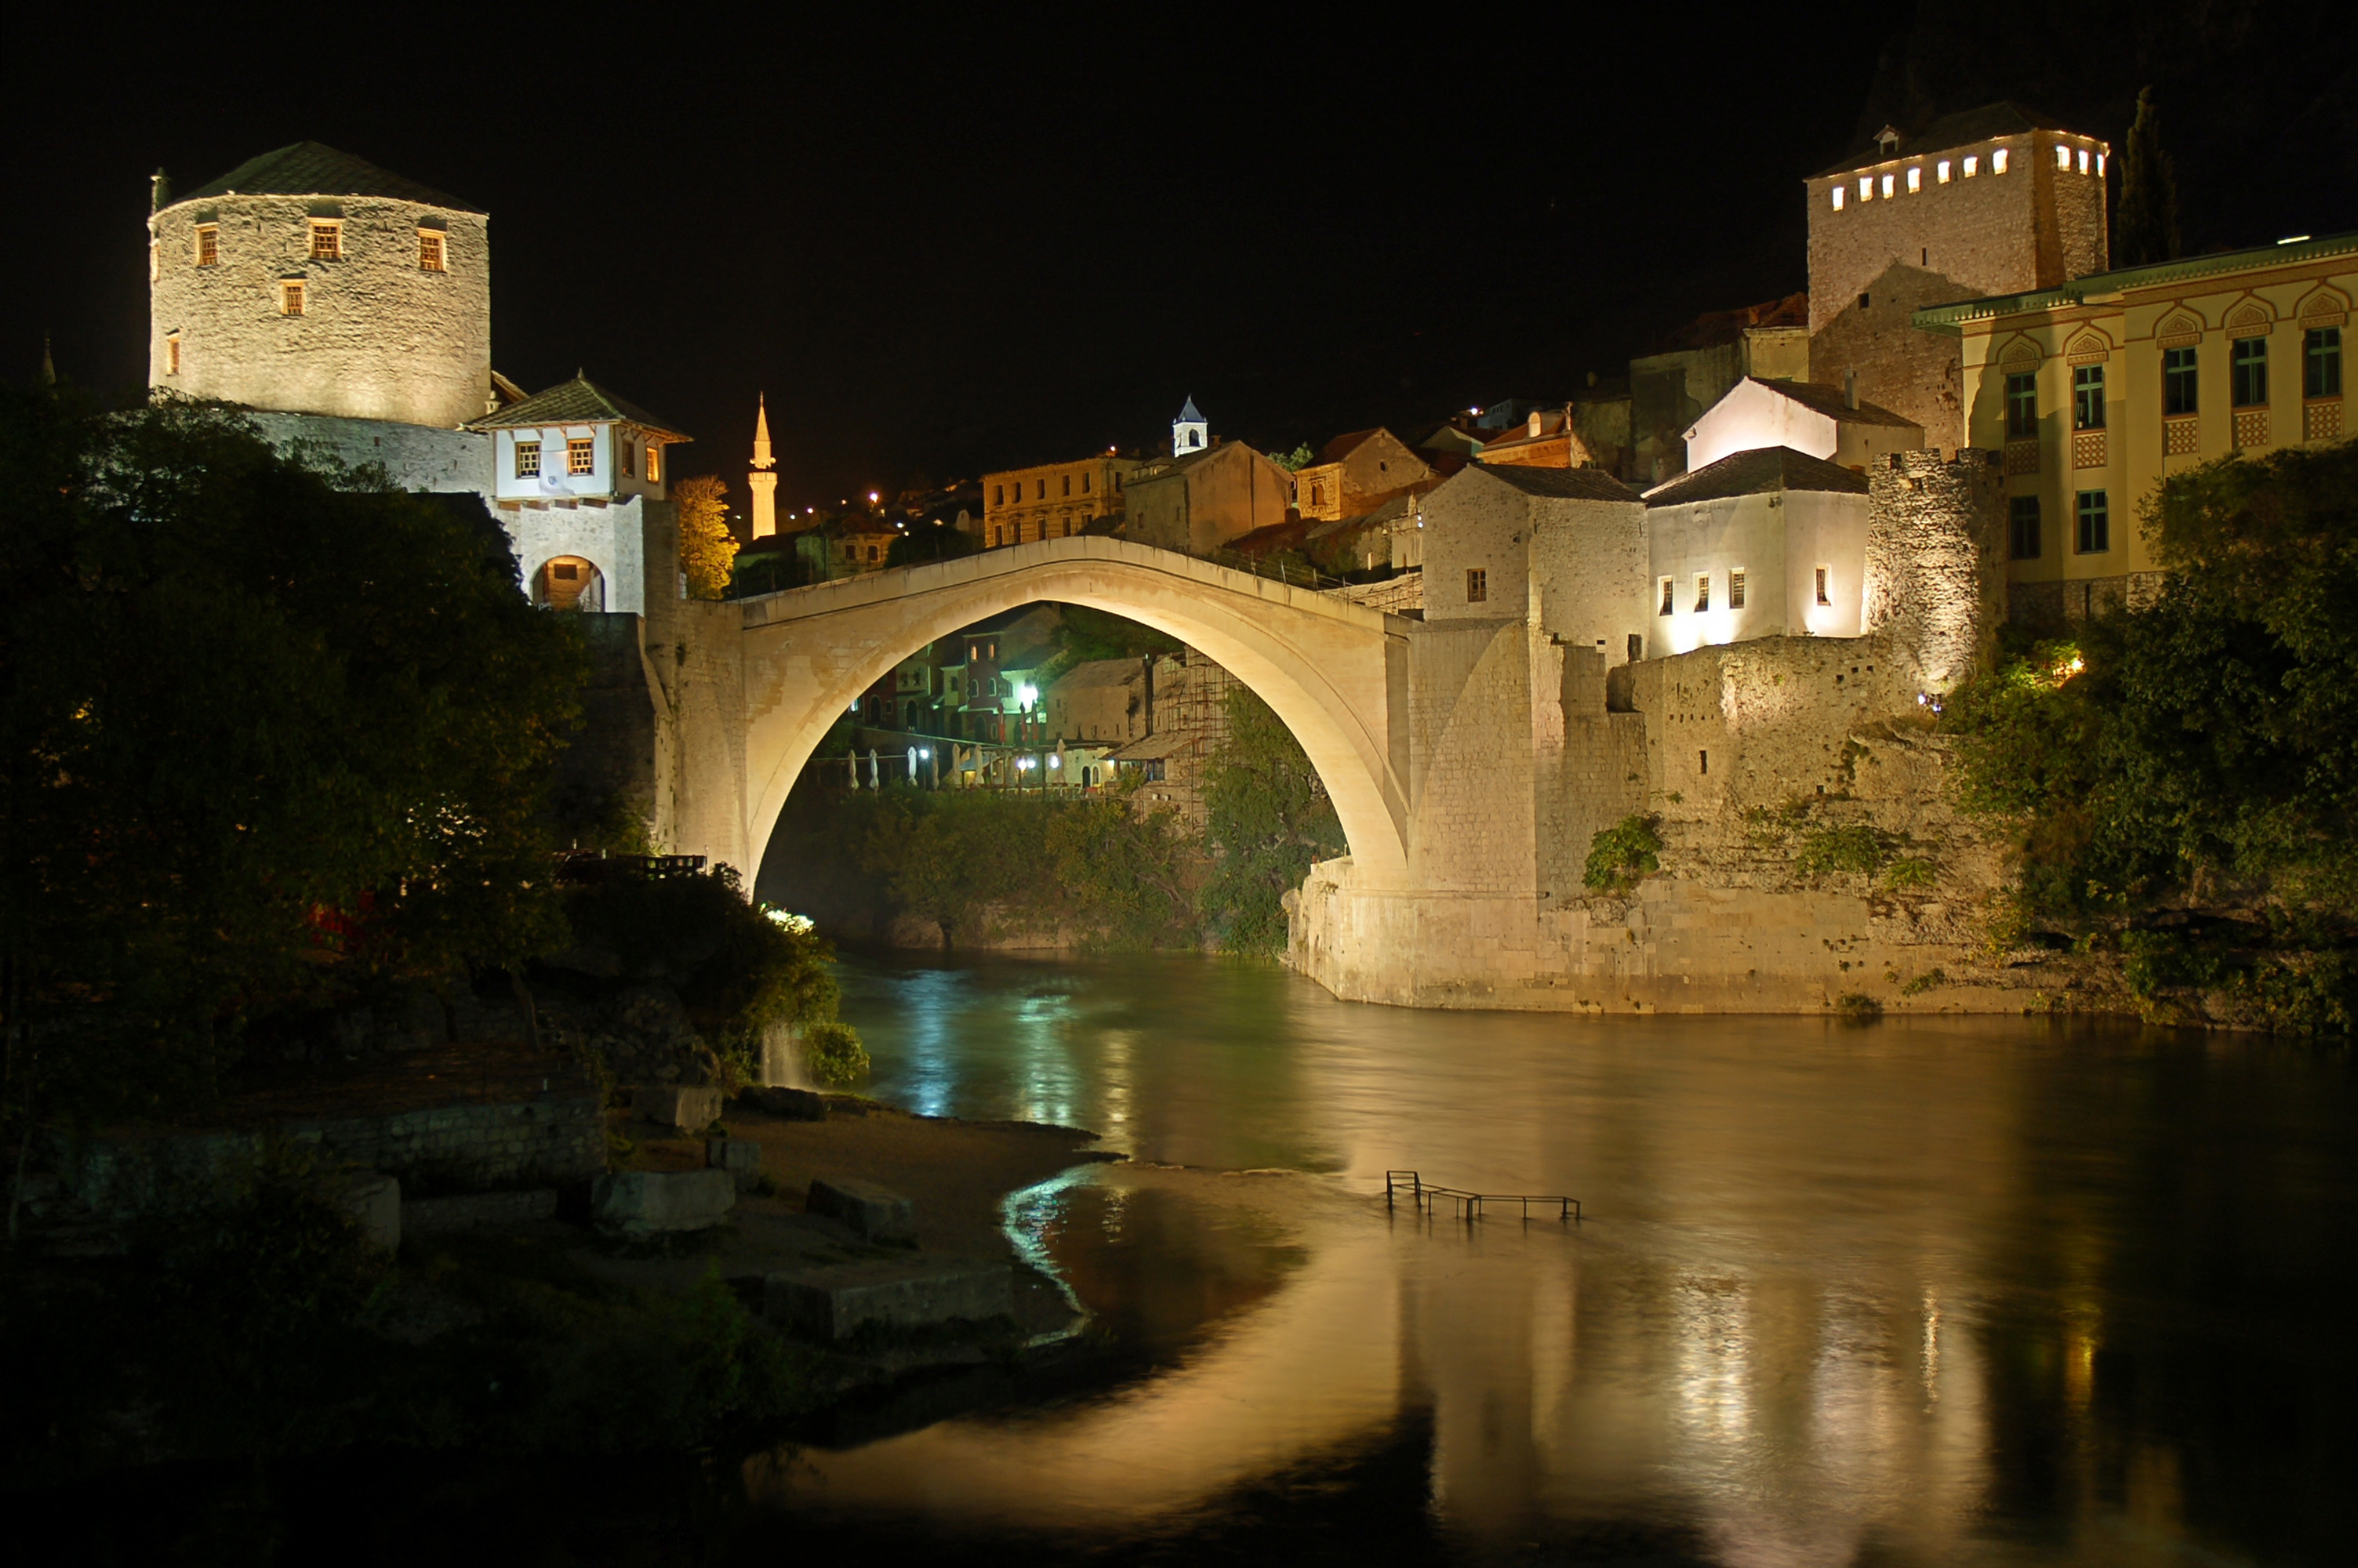 Mostar, Stari Most at night